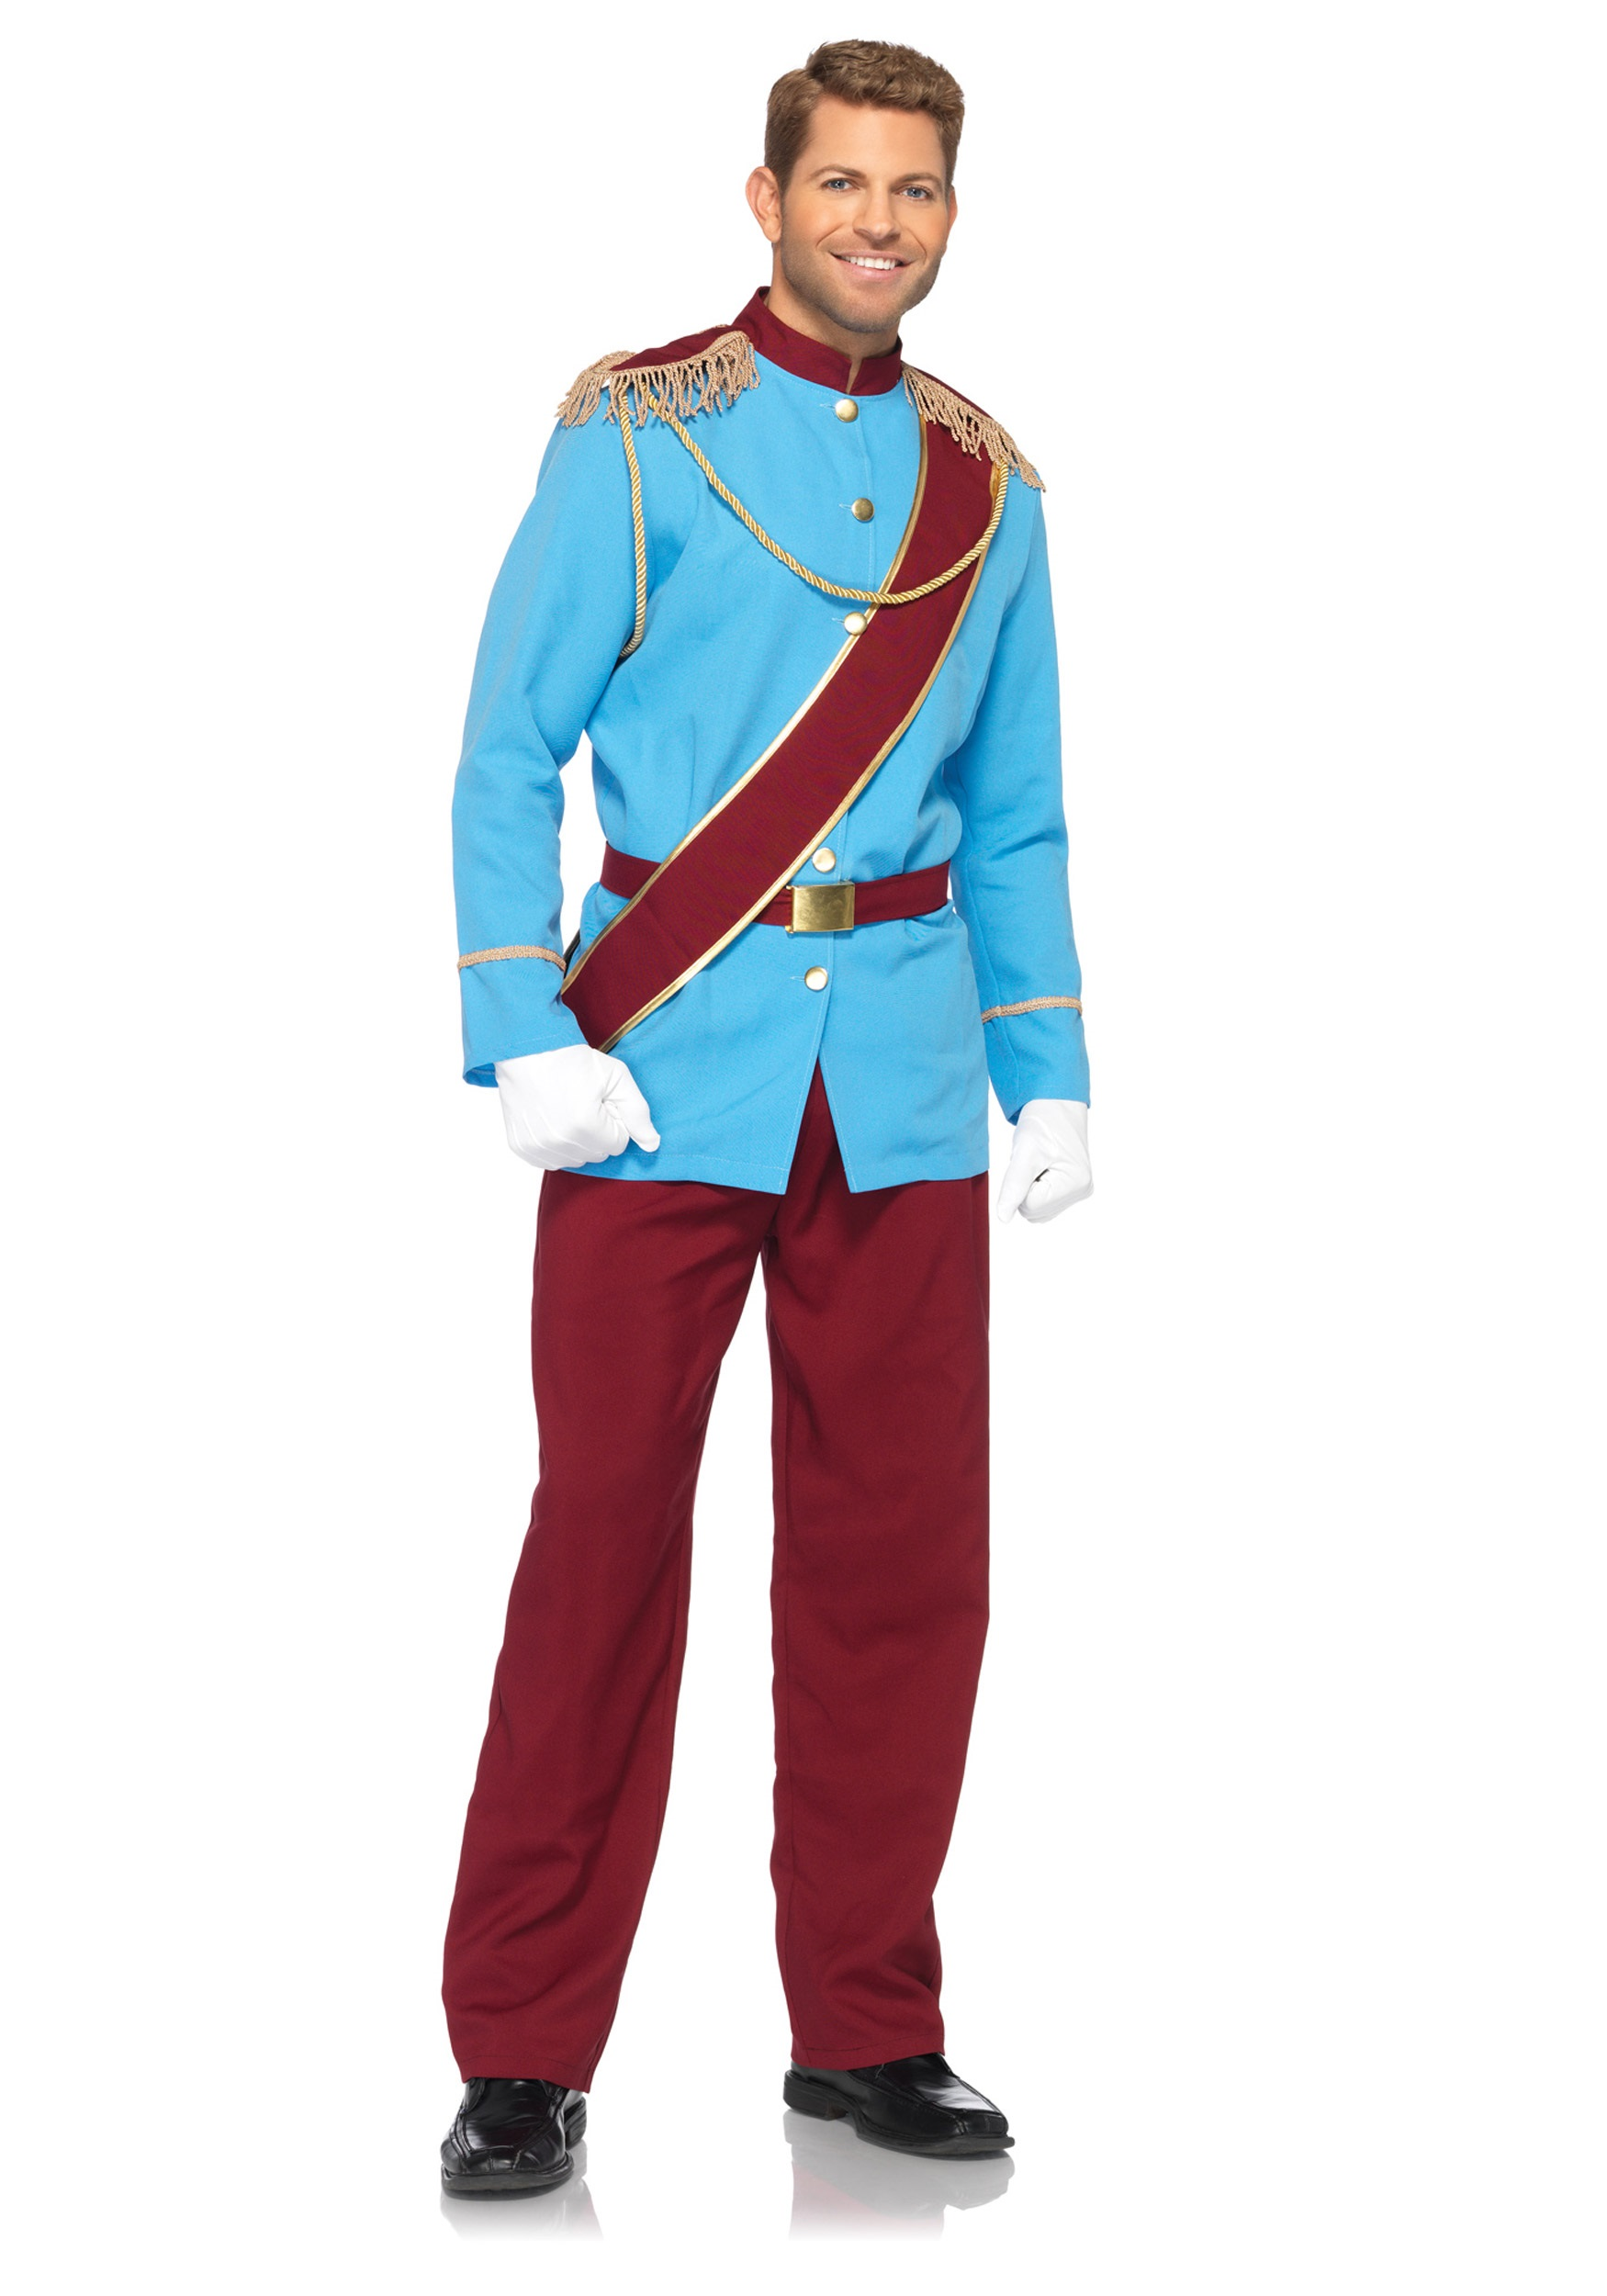 Menu0027s Disney Prince Charming Costume  sc 1 st  Halloween Costumes & Menu0027s Disney Prince Charming Costume - Halloween Costumes